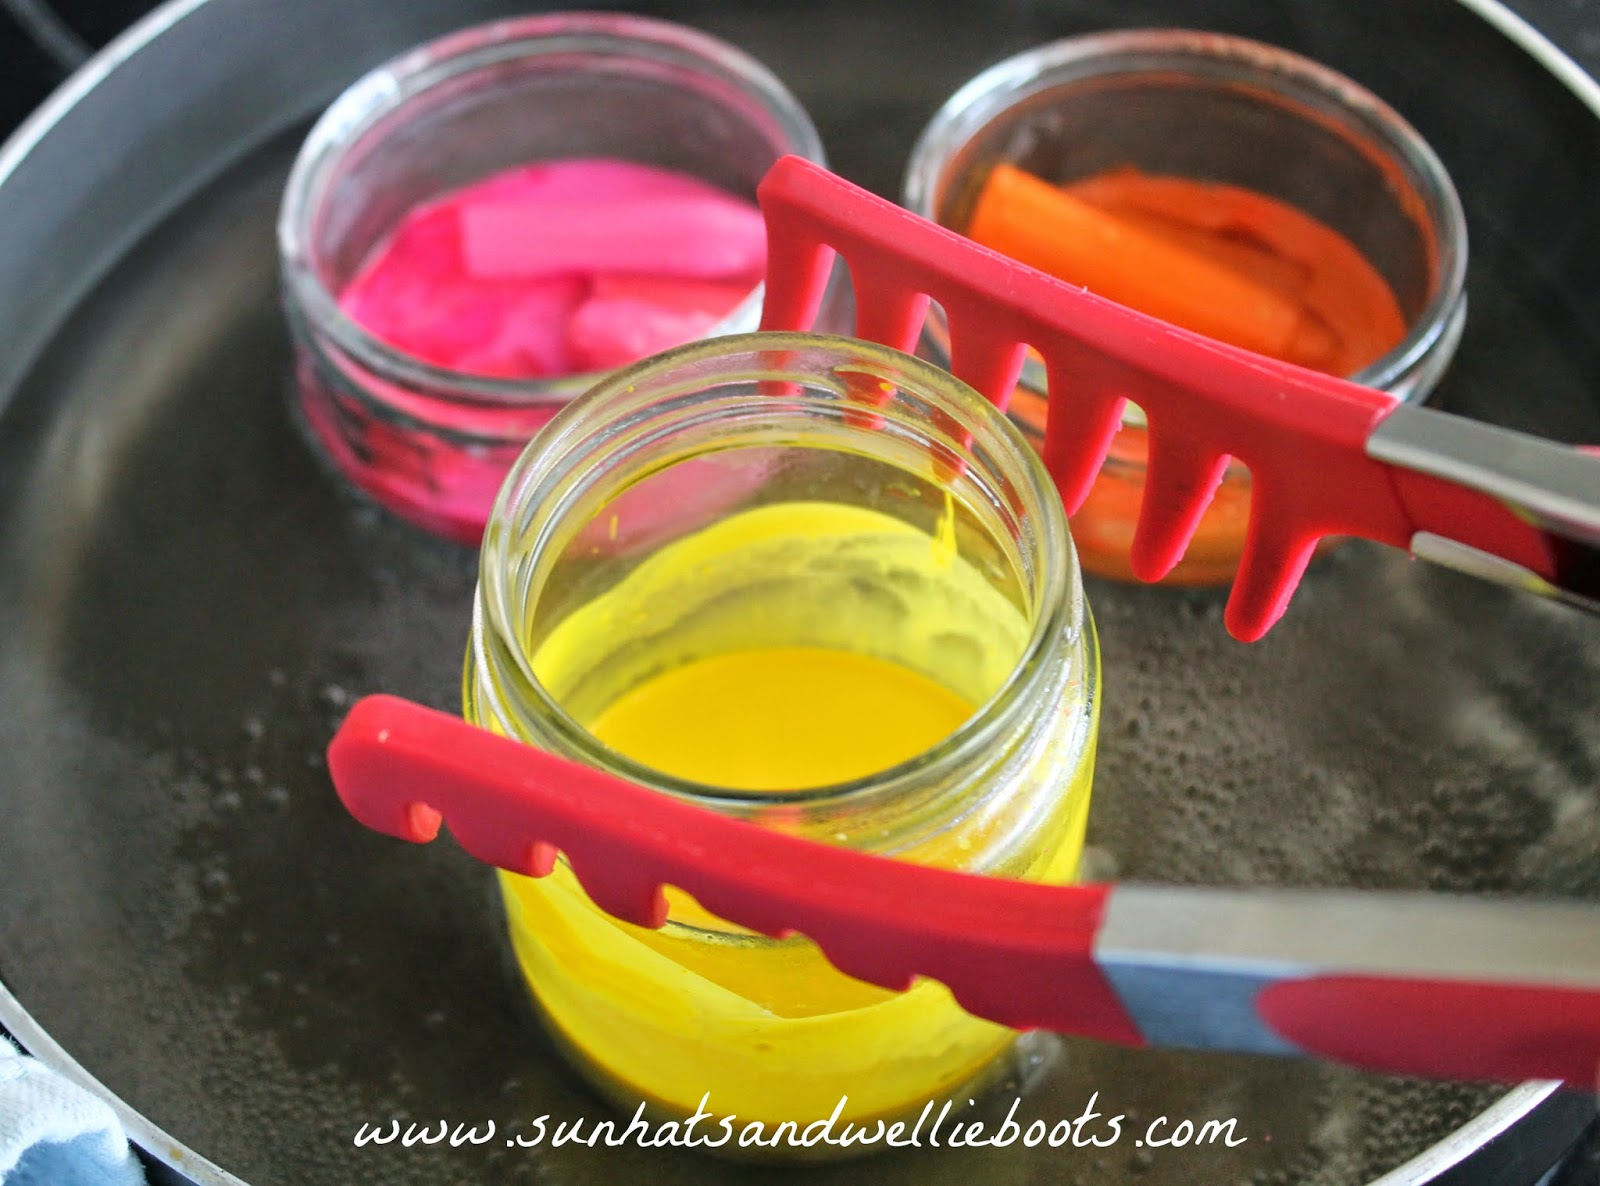 sun hats wellie boots homemade easter crayons. Black Bedroom Furniture Sets. Home Design Ideas